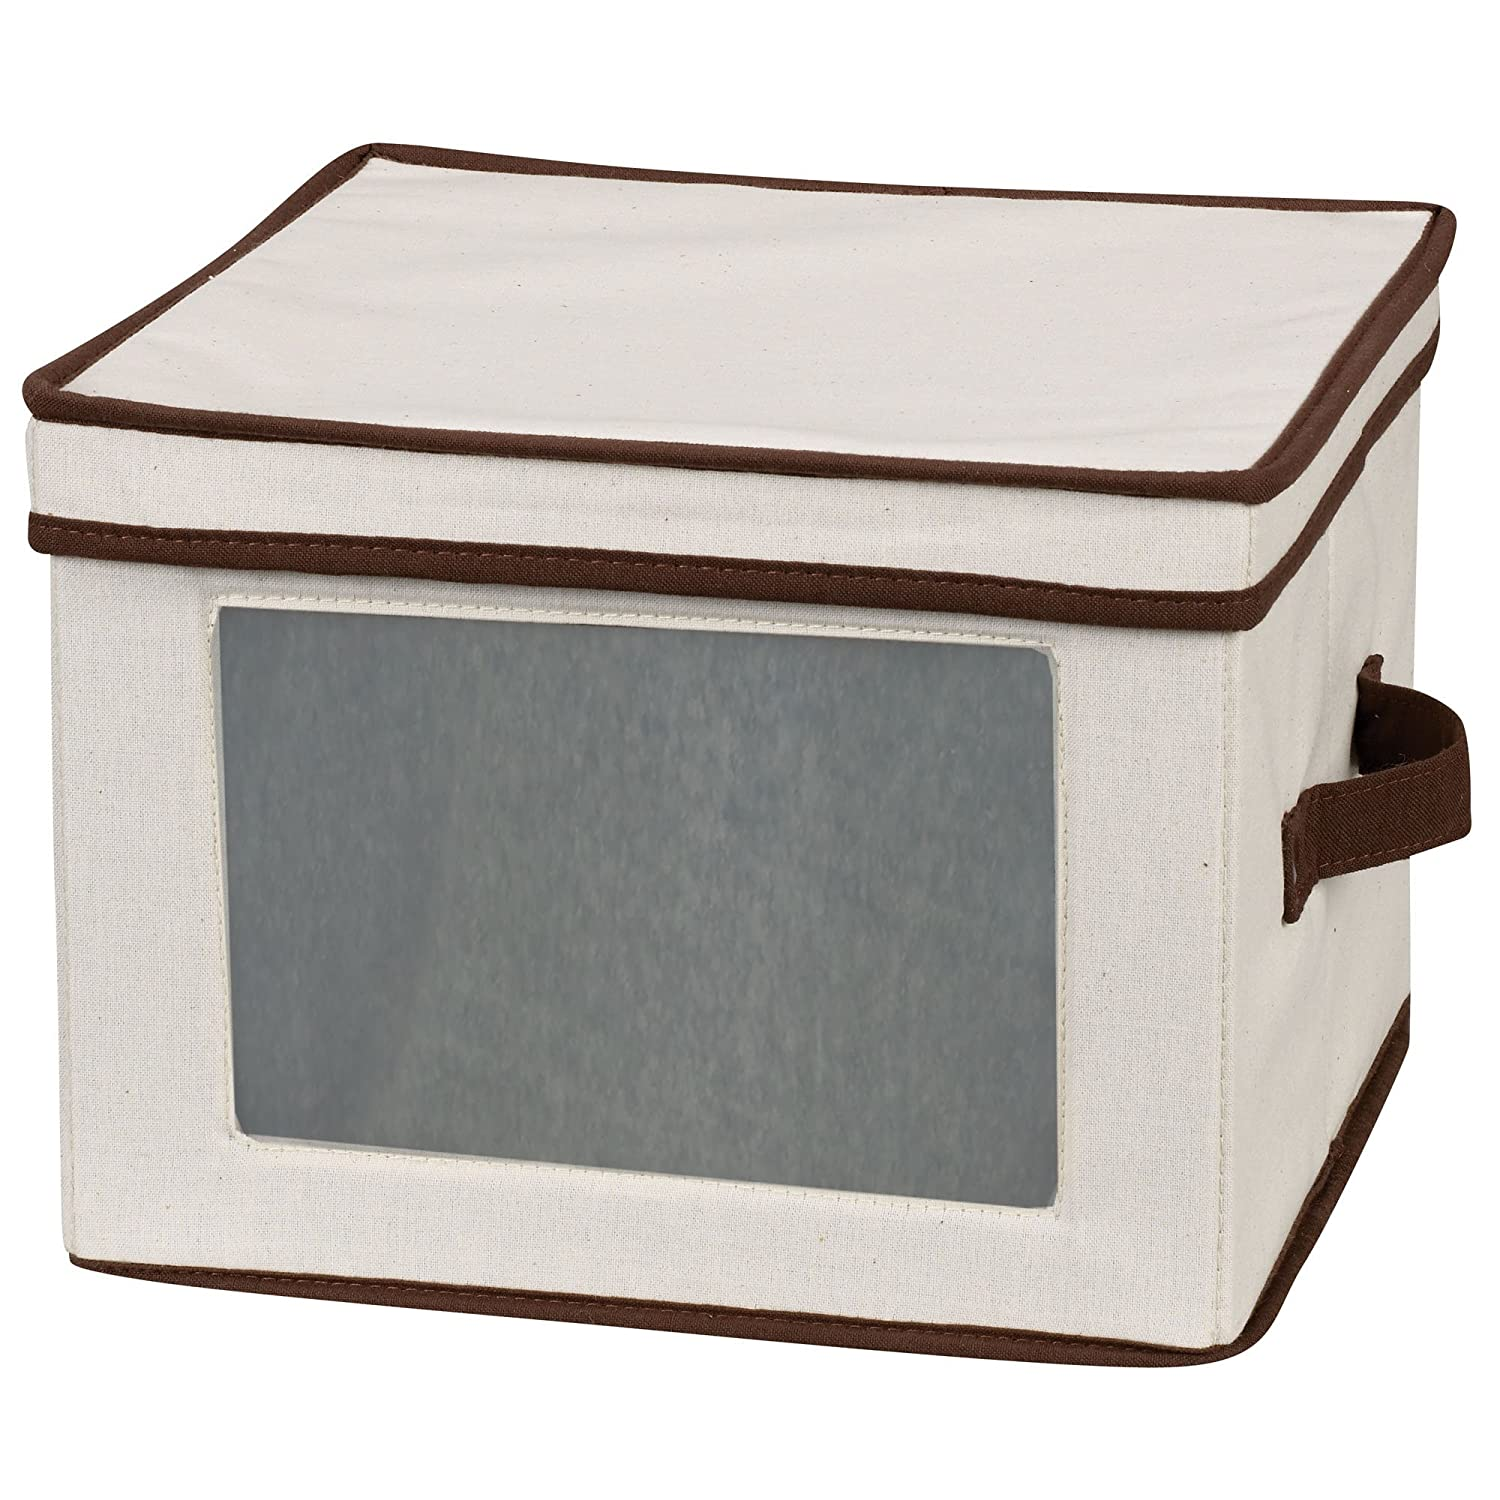 Beau Amazon.com: Household Essentials 536 Dinnerware Storage Box With Lid And  Handles | Storage Bin For Dinner Plates | Natural Canvas With Brown Trim:  Home U0026 ...